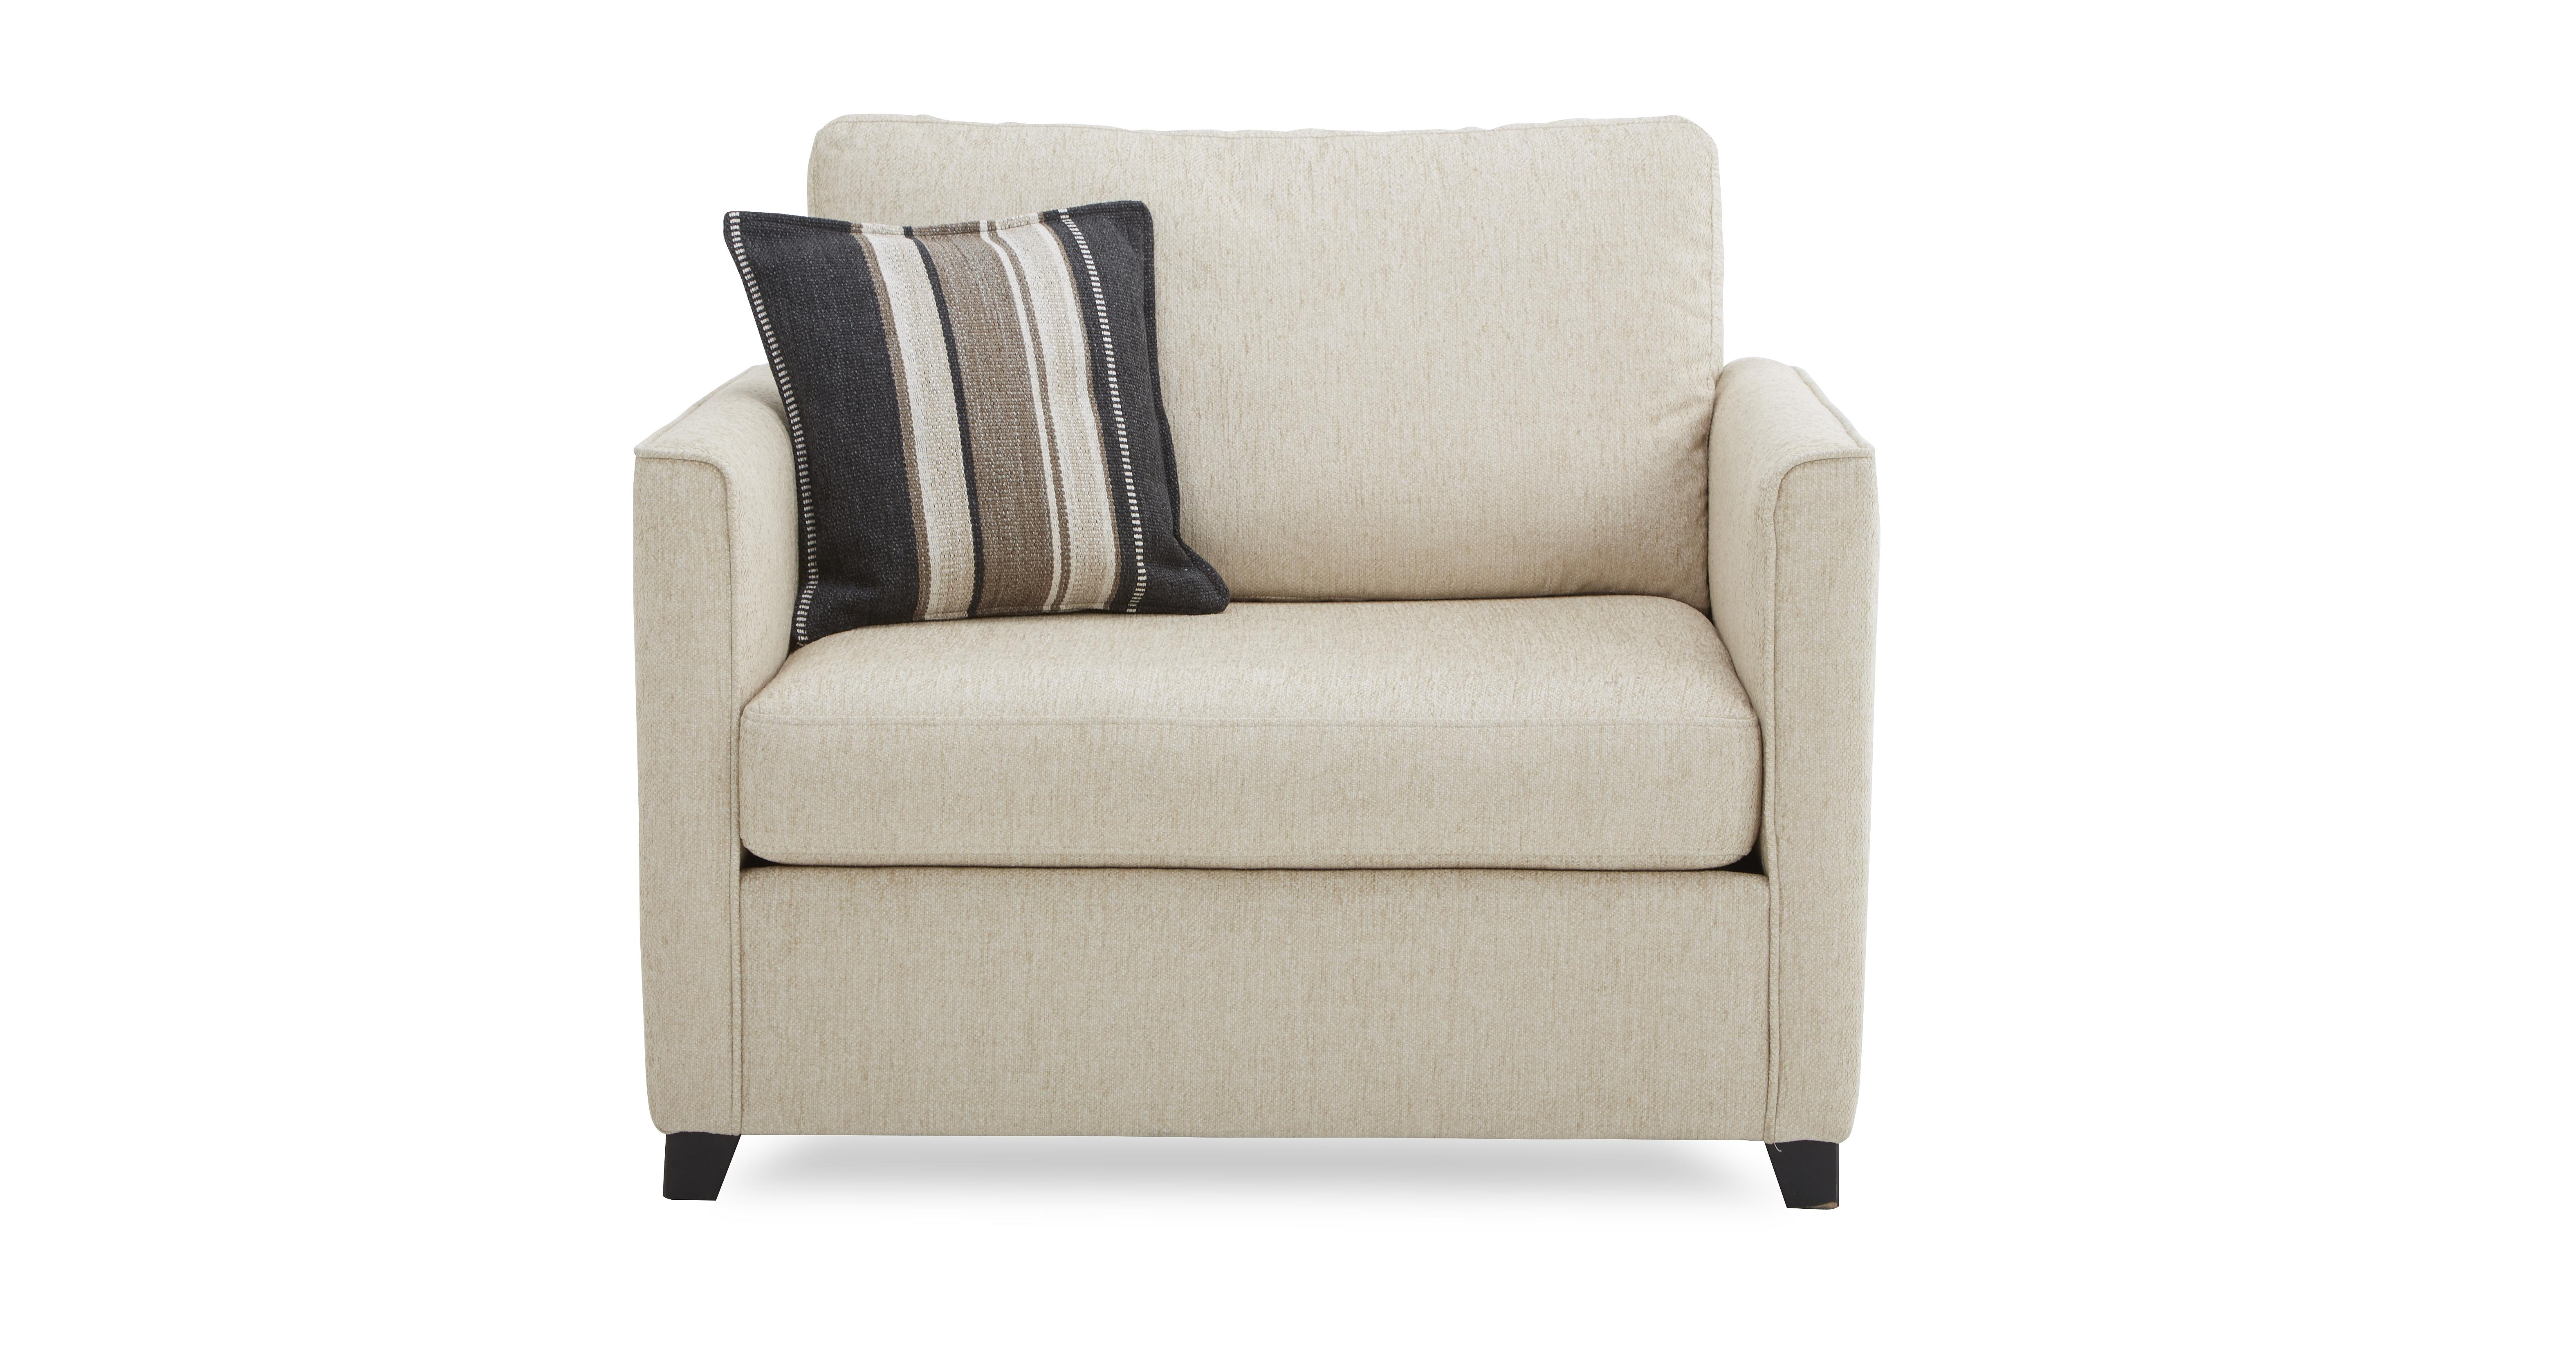 Sofa : Endearing Single Sofa Chair Best Bed 51 Sofas And Couches Inside Single Sofas (Image 8 of 10)